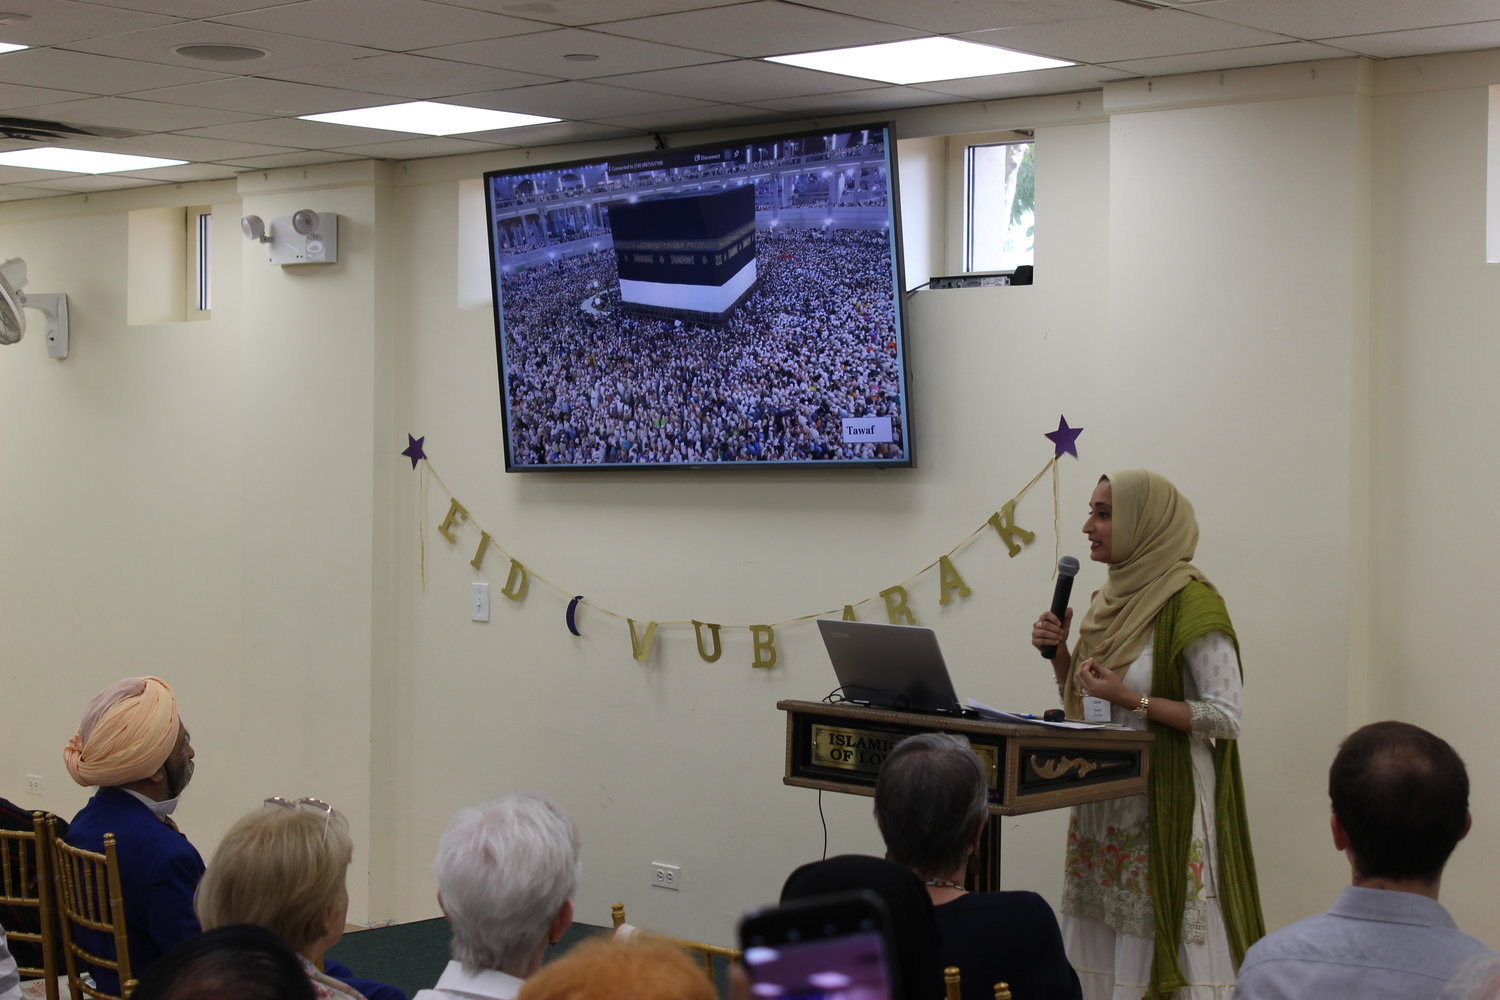 Leading up to the holiday, Muslims from around the world make a pilgrimage to Mecca called the Hajj. Sahar Hussain, right, another ICLI Interfaith Institute board member, made the pilgrimage in 2015, and shared her experience with congregants. She displayed an aerial view of the crowd of worshippers in the center of Mecca's Grand Mosque.